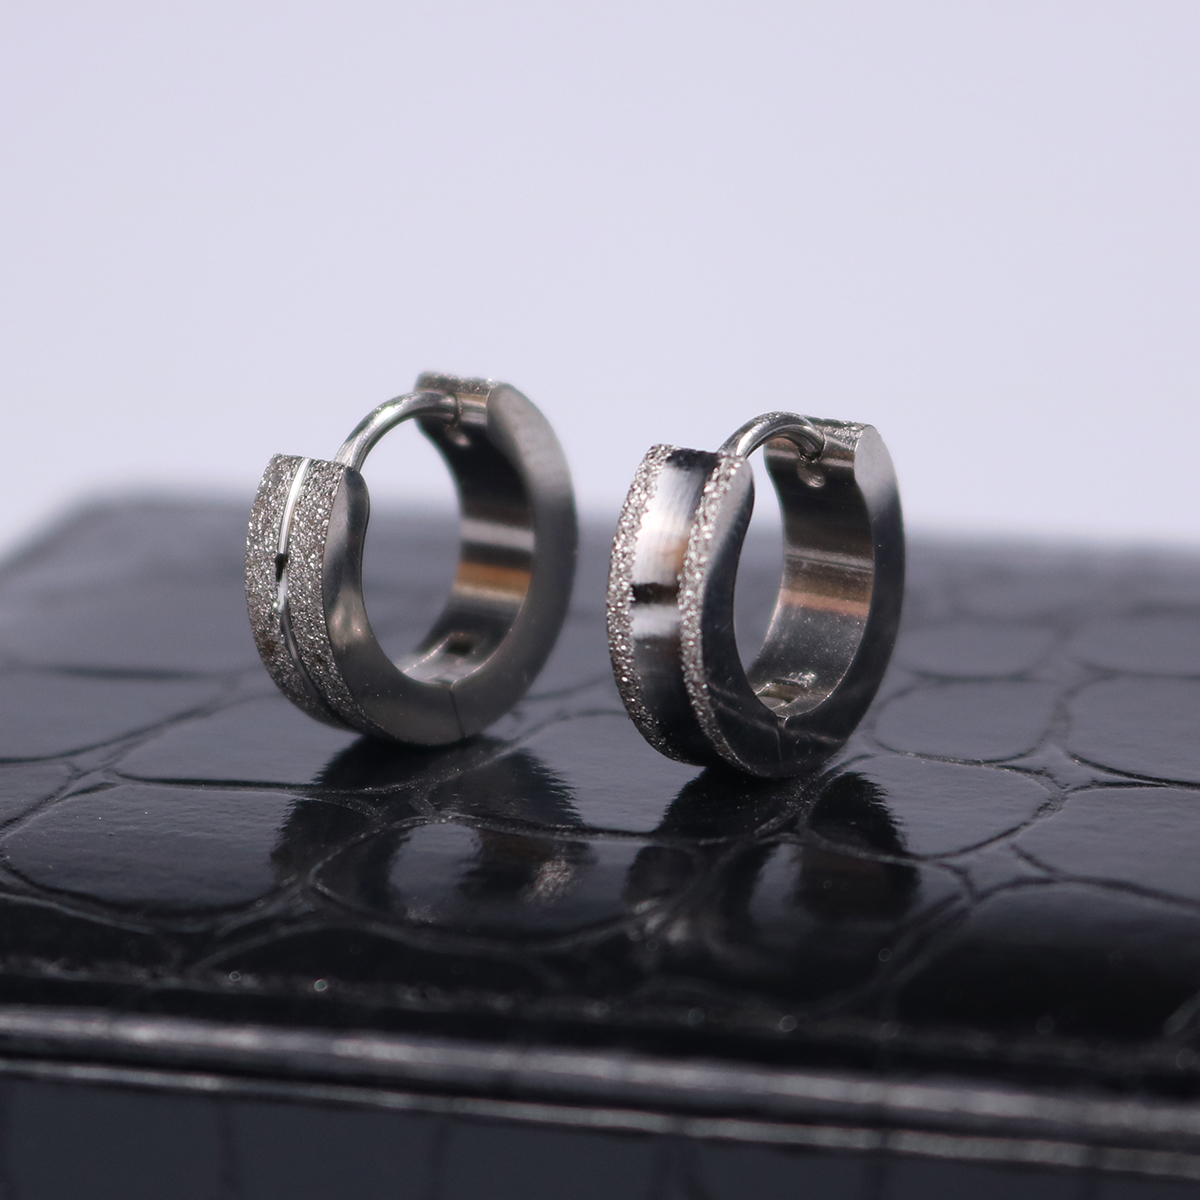 2017 Special Offer Plated Trendy Brinco New Steel Frosted Ear Buckle Men And Fashion Personality Temperament Earrings Jewelry